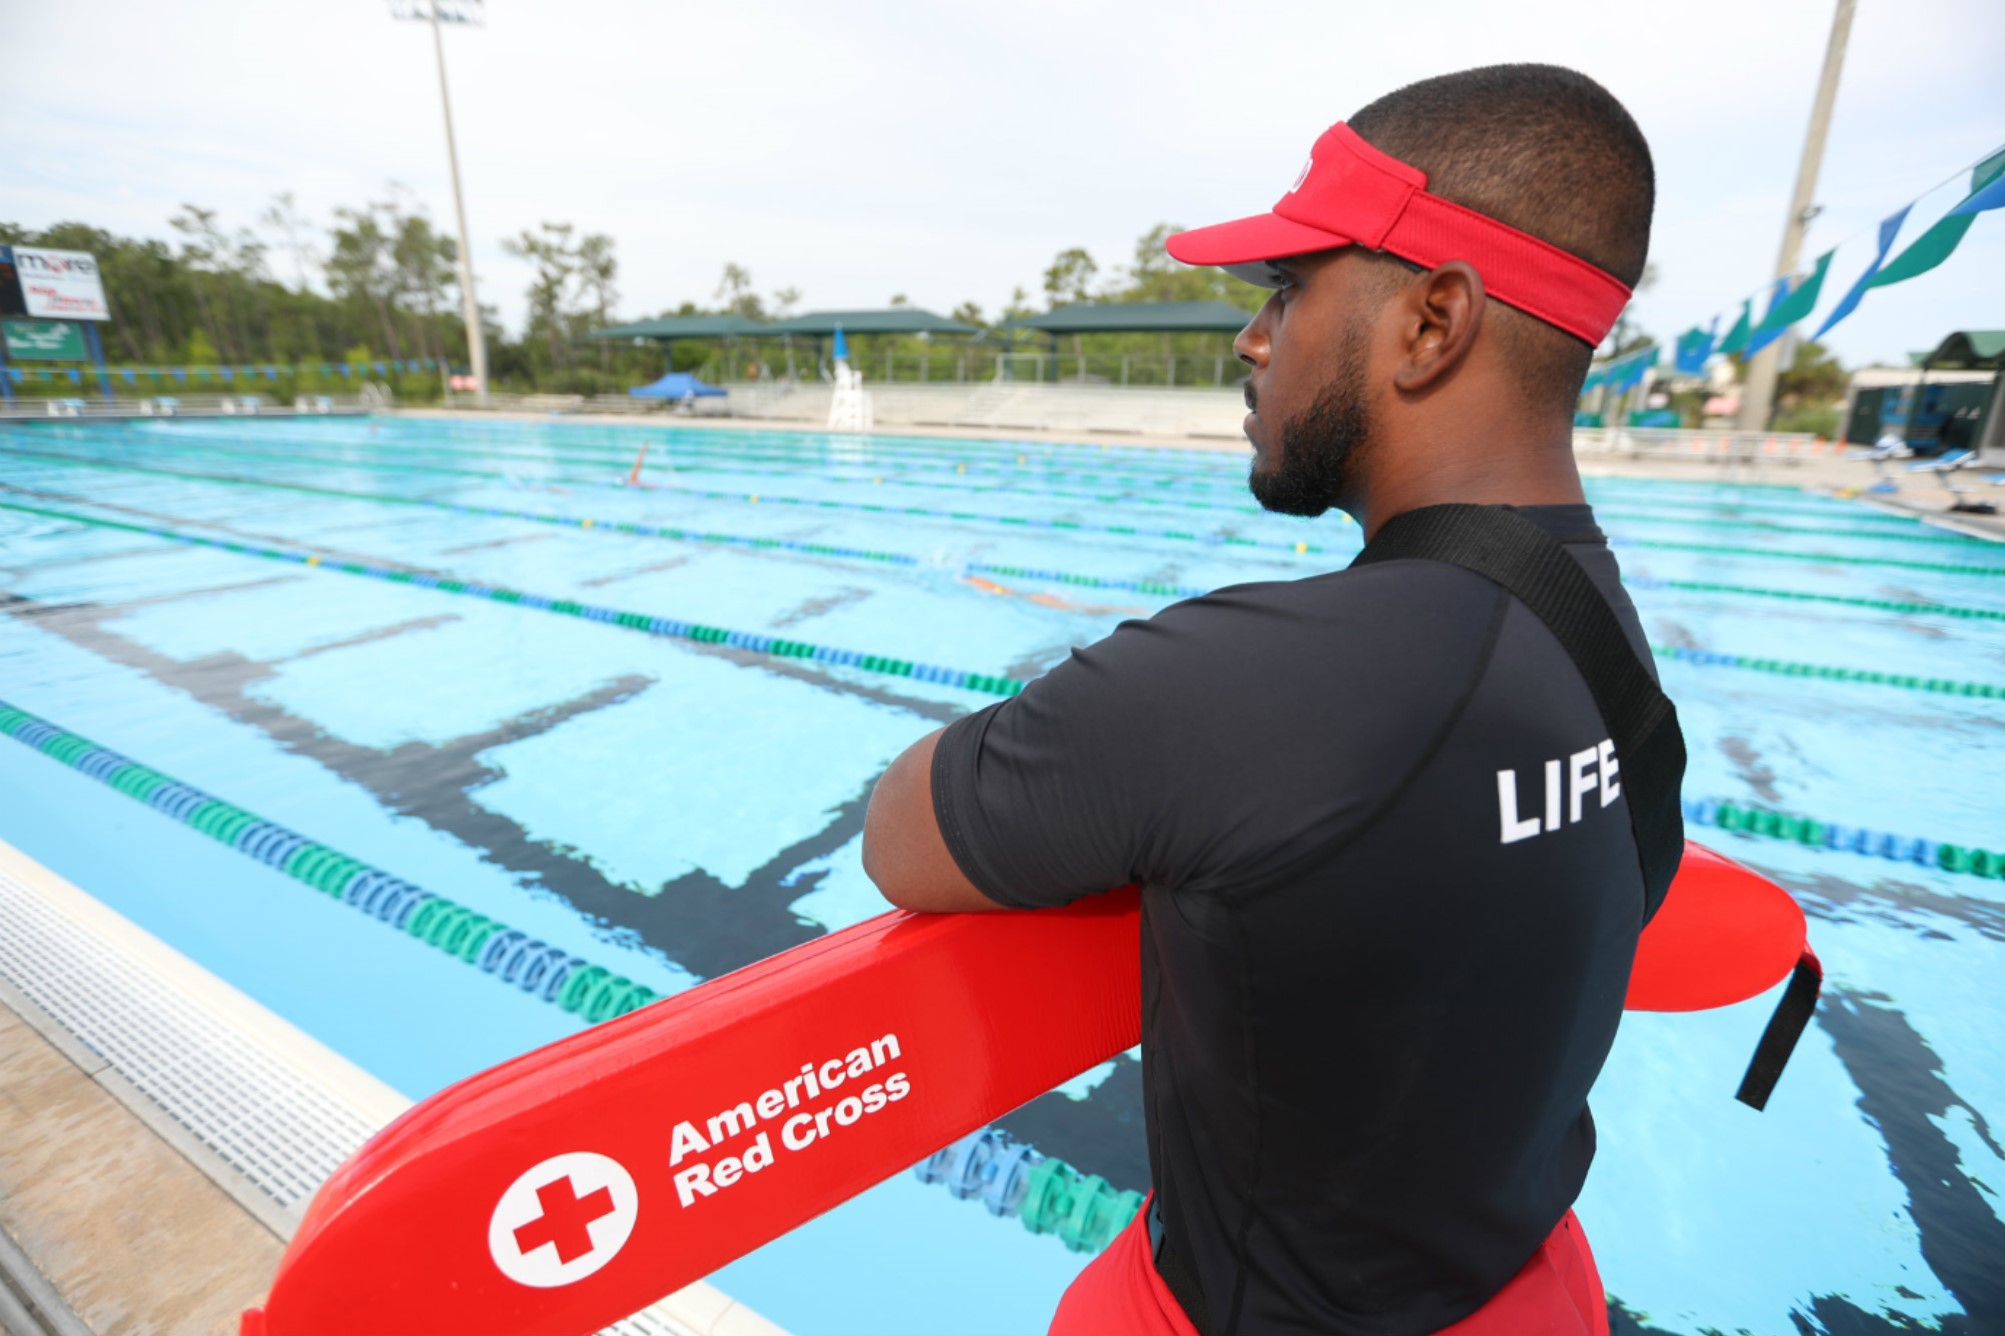 Learn-to-Lifeguard classes